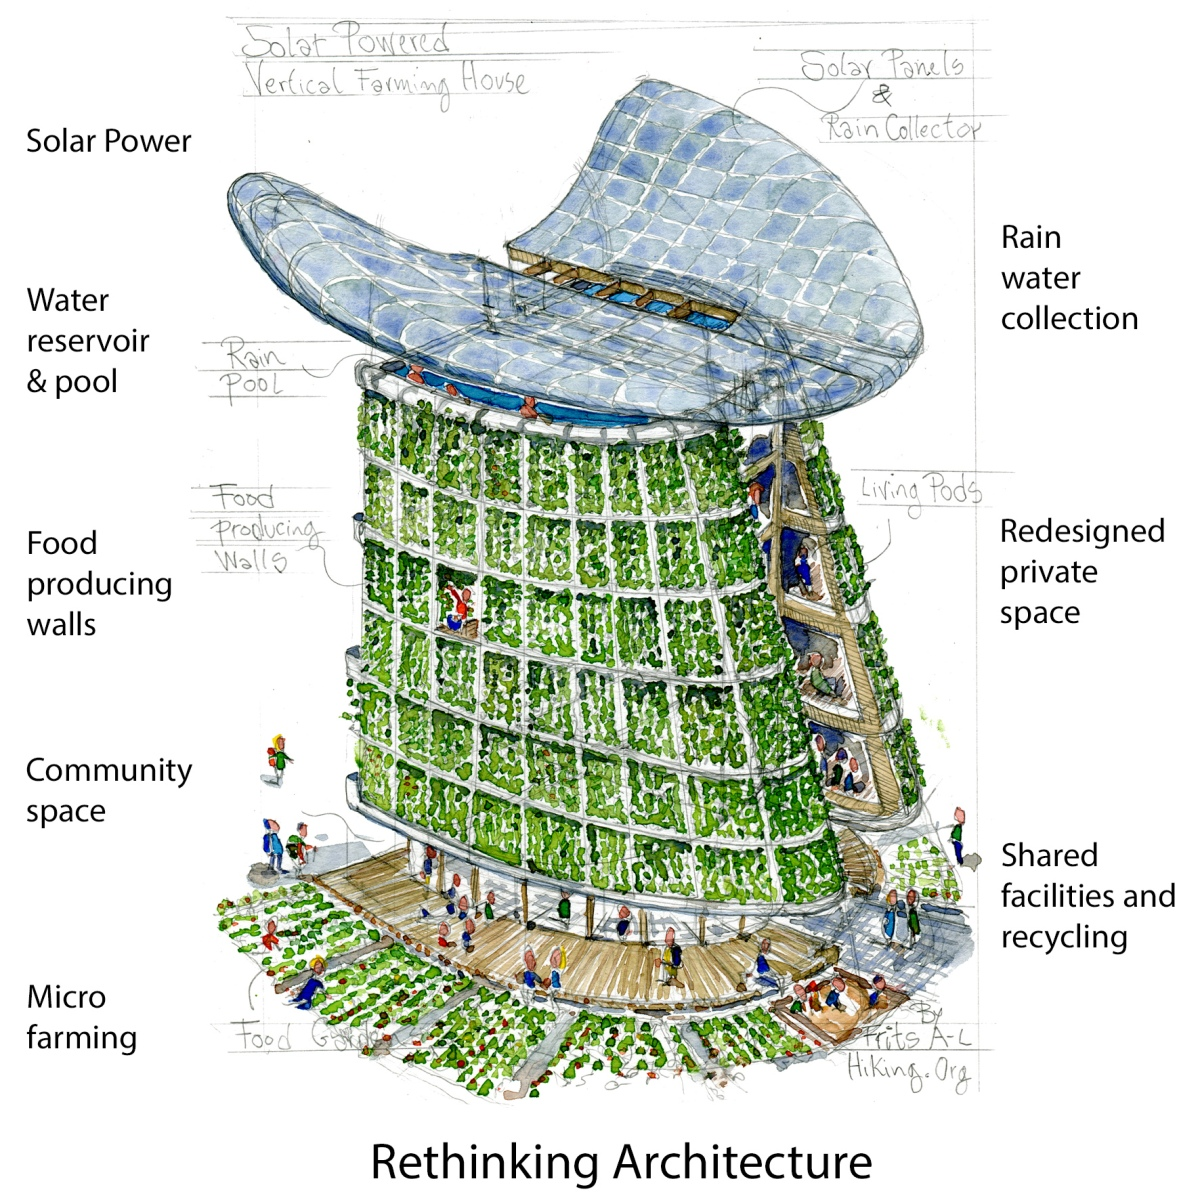 Drawing of a green eco house with solar cells, water reservoir and vertical gardens